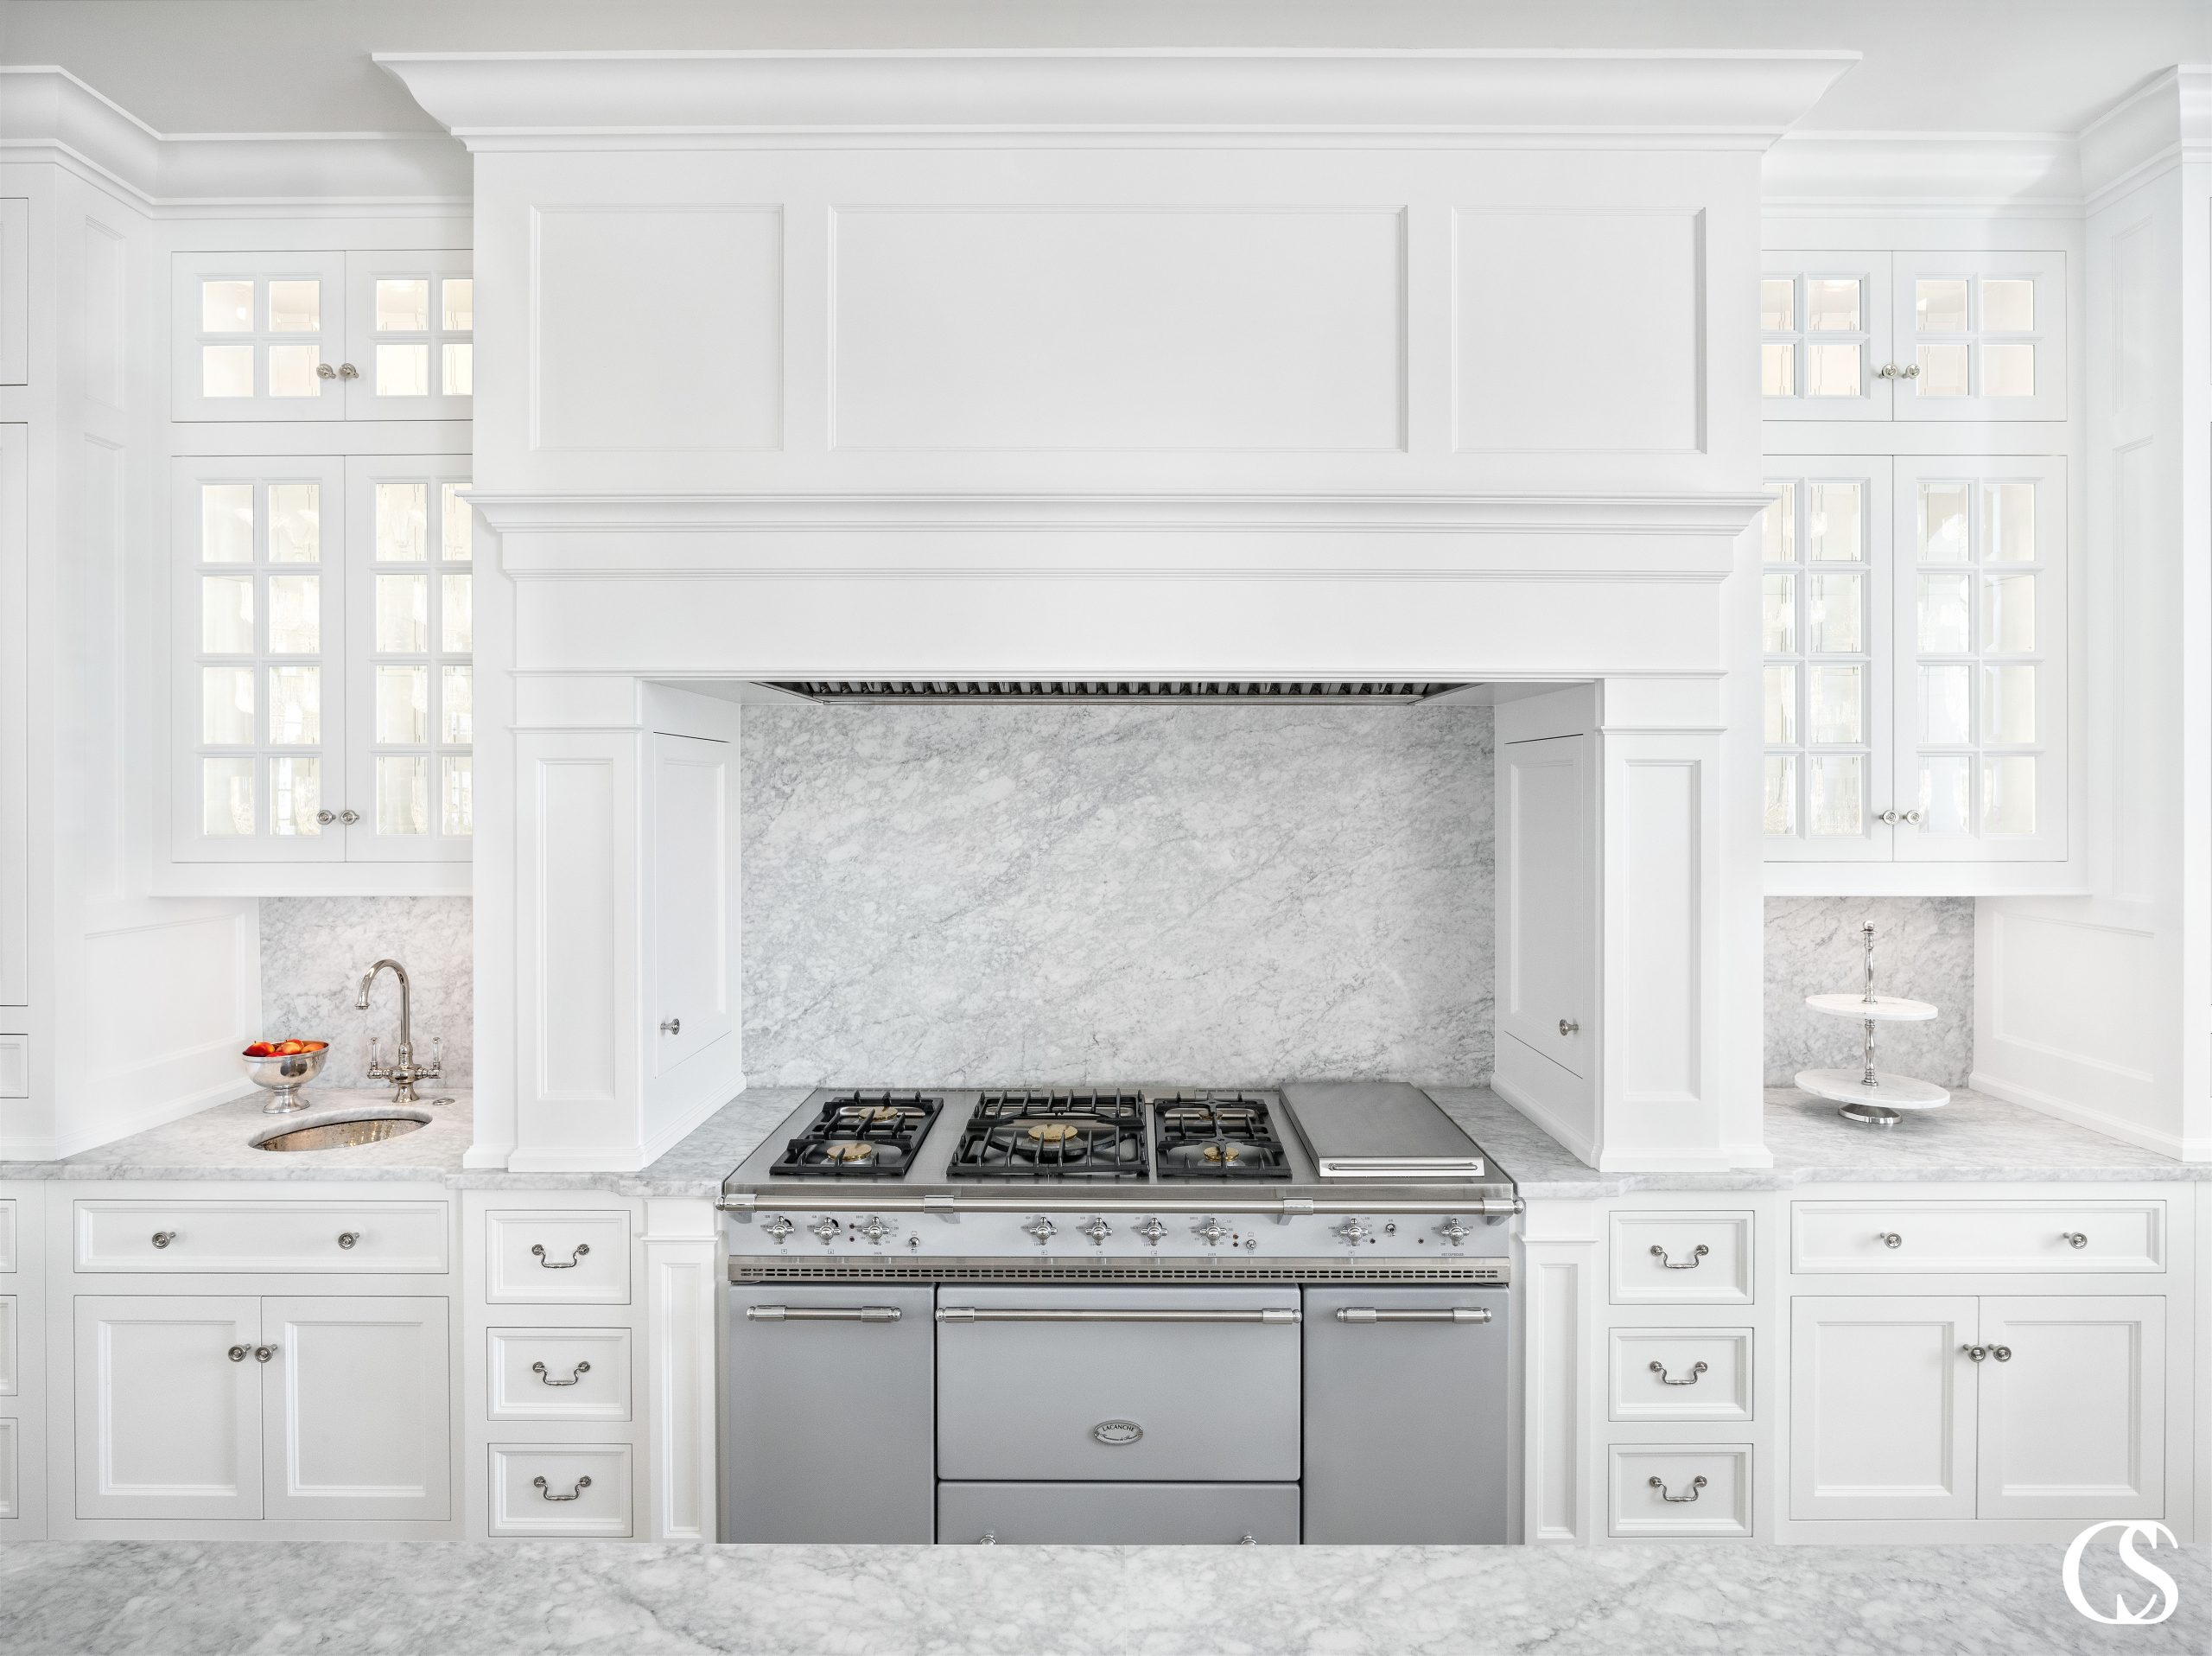 No two custom kitchen designs are alike. Hiring the best cabinet designer ensures you'll be able to eek every ounce of functionality AND personality out of your new kitchen.